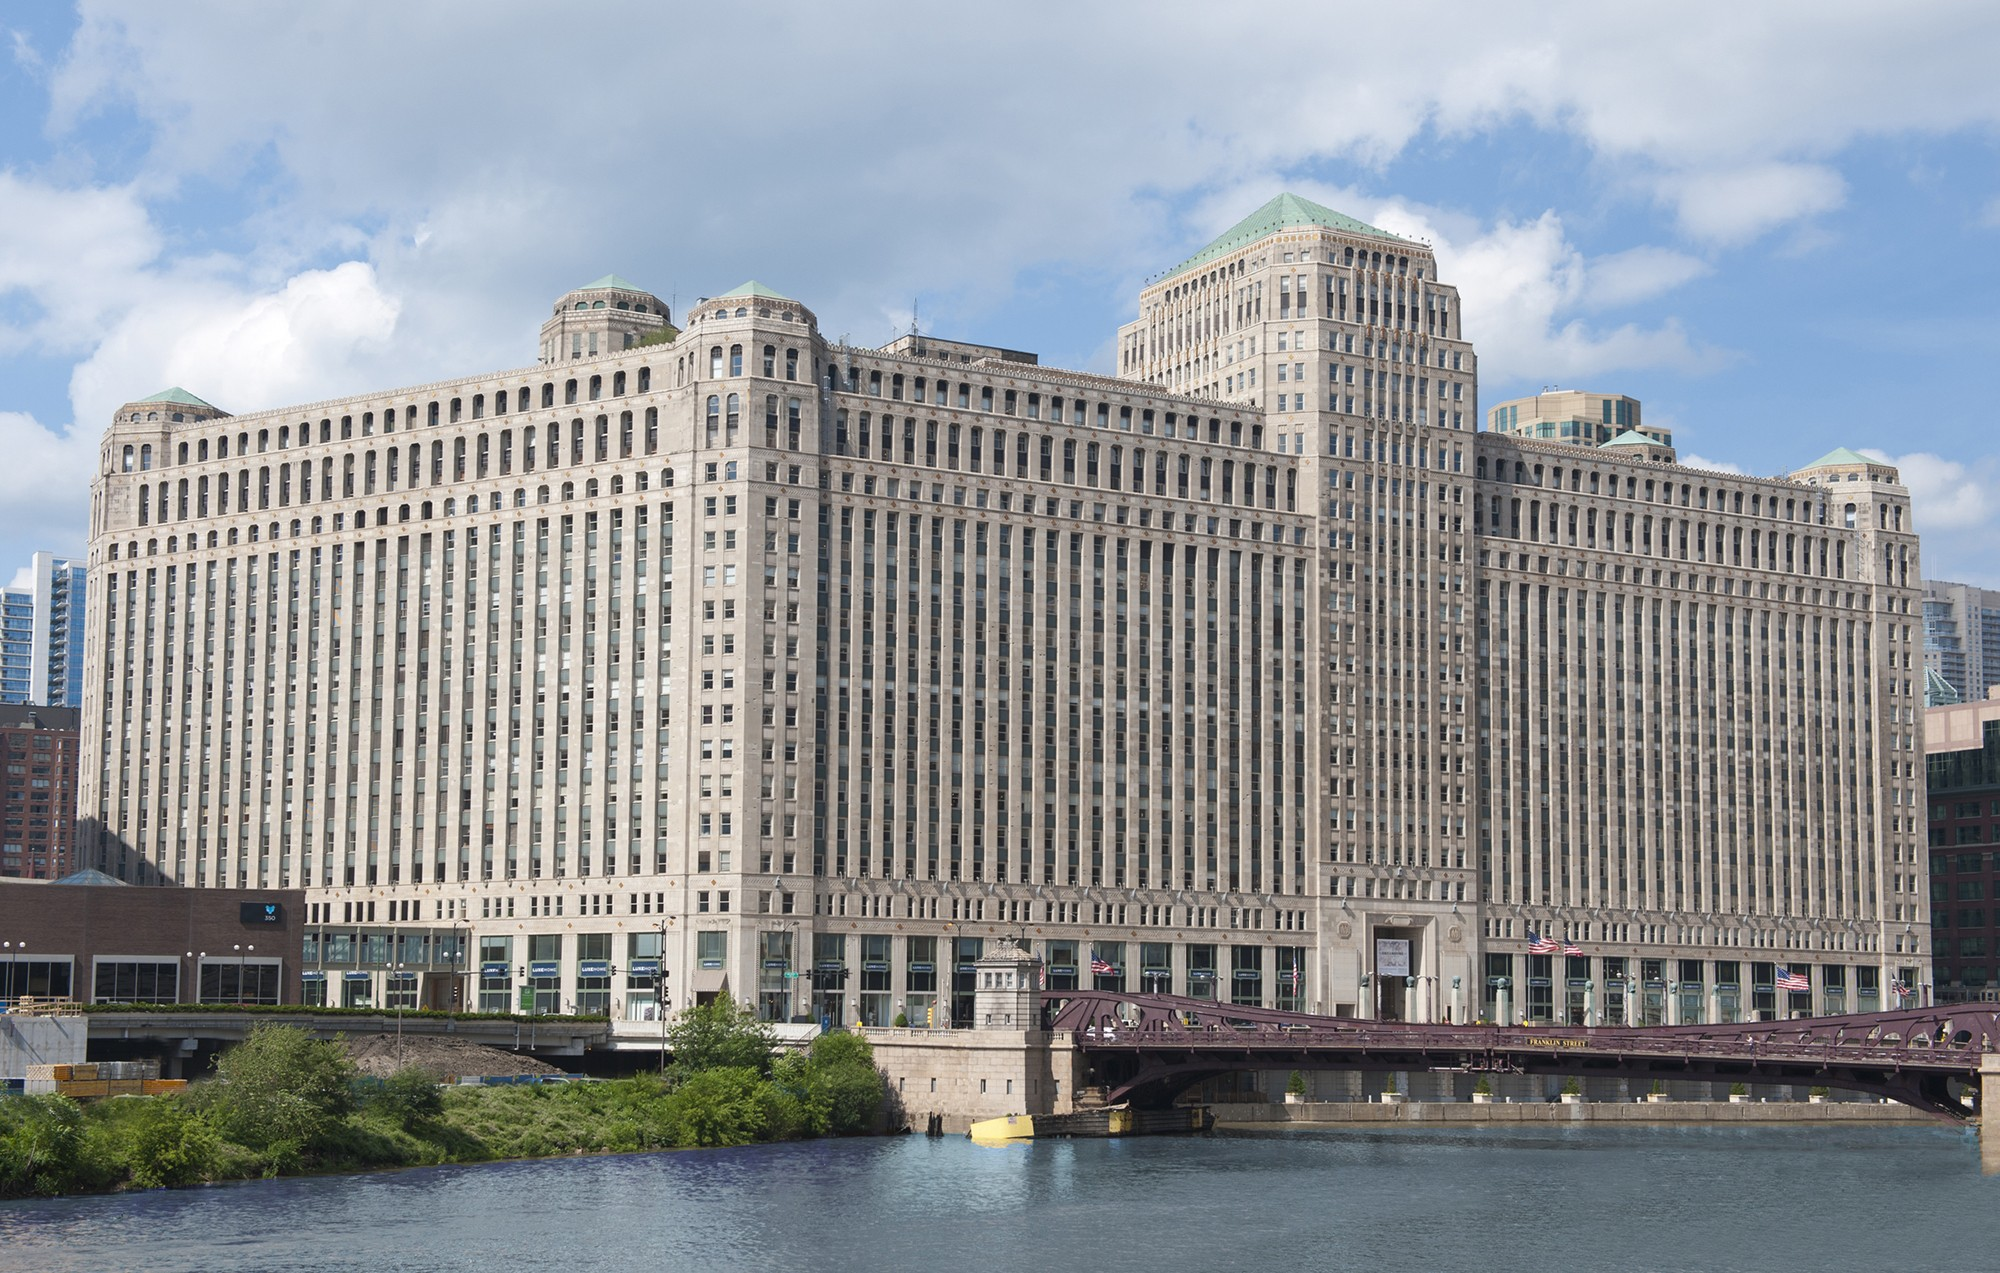 Classic Home Plans Merchandise Mart 183 Buildings Of Chicago 183 Chicago